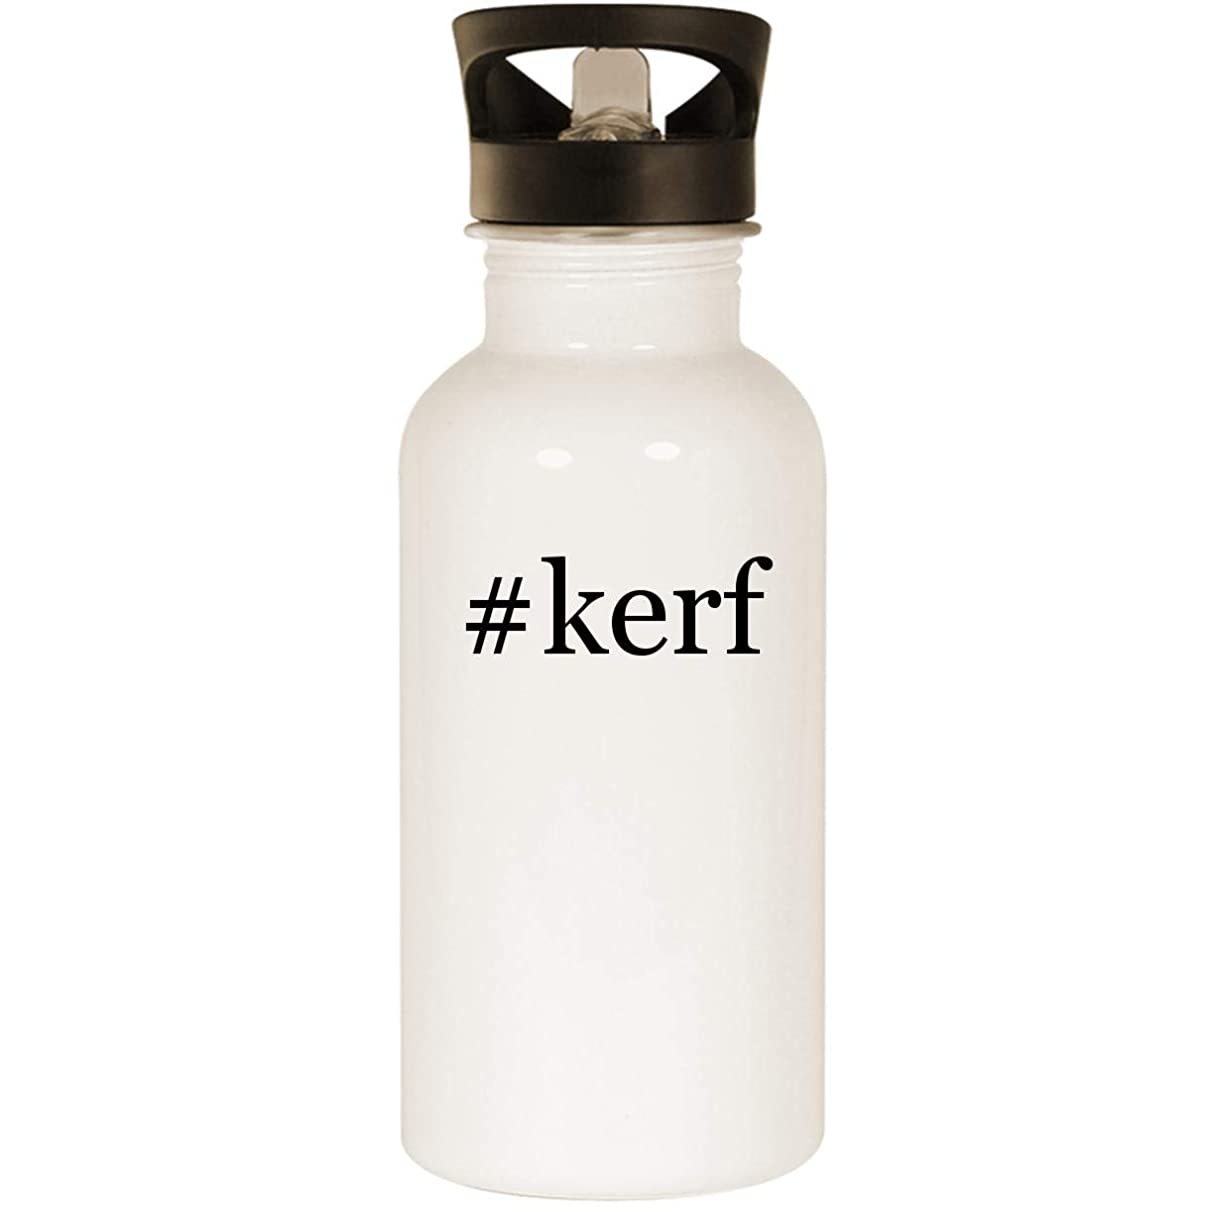 #kerf - Stainless Steel Hashtag 20oz Road Ready Water Bottle, White